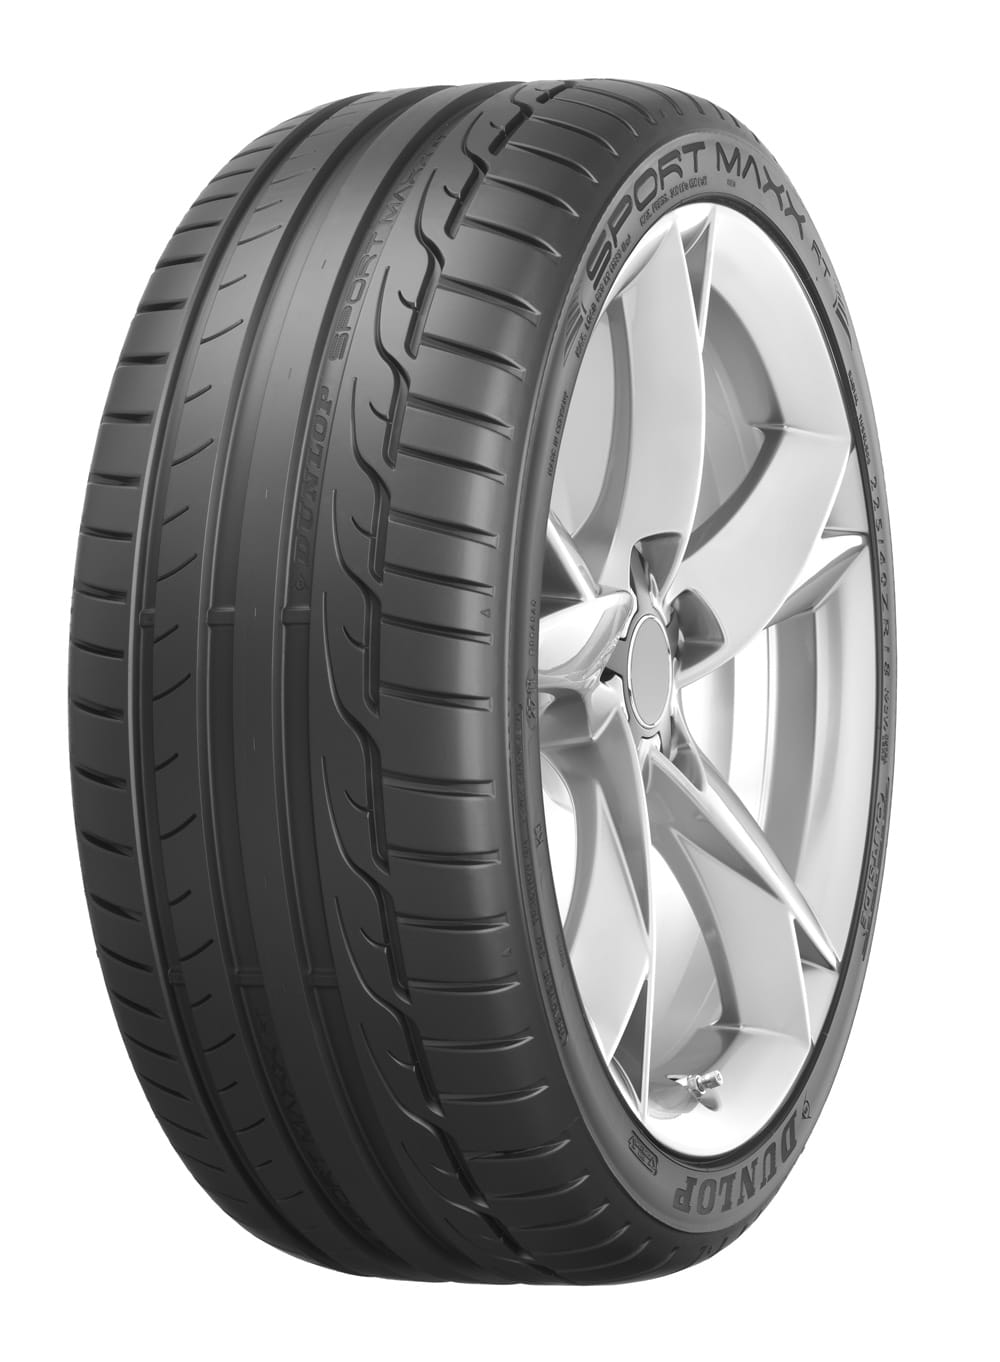 Gomme Nuove Dunlop 245/45 R19 98Y SP.MAXX RT MGT MFS pneumatici nuovi Estivo